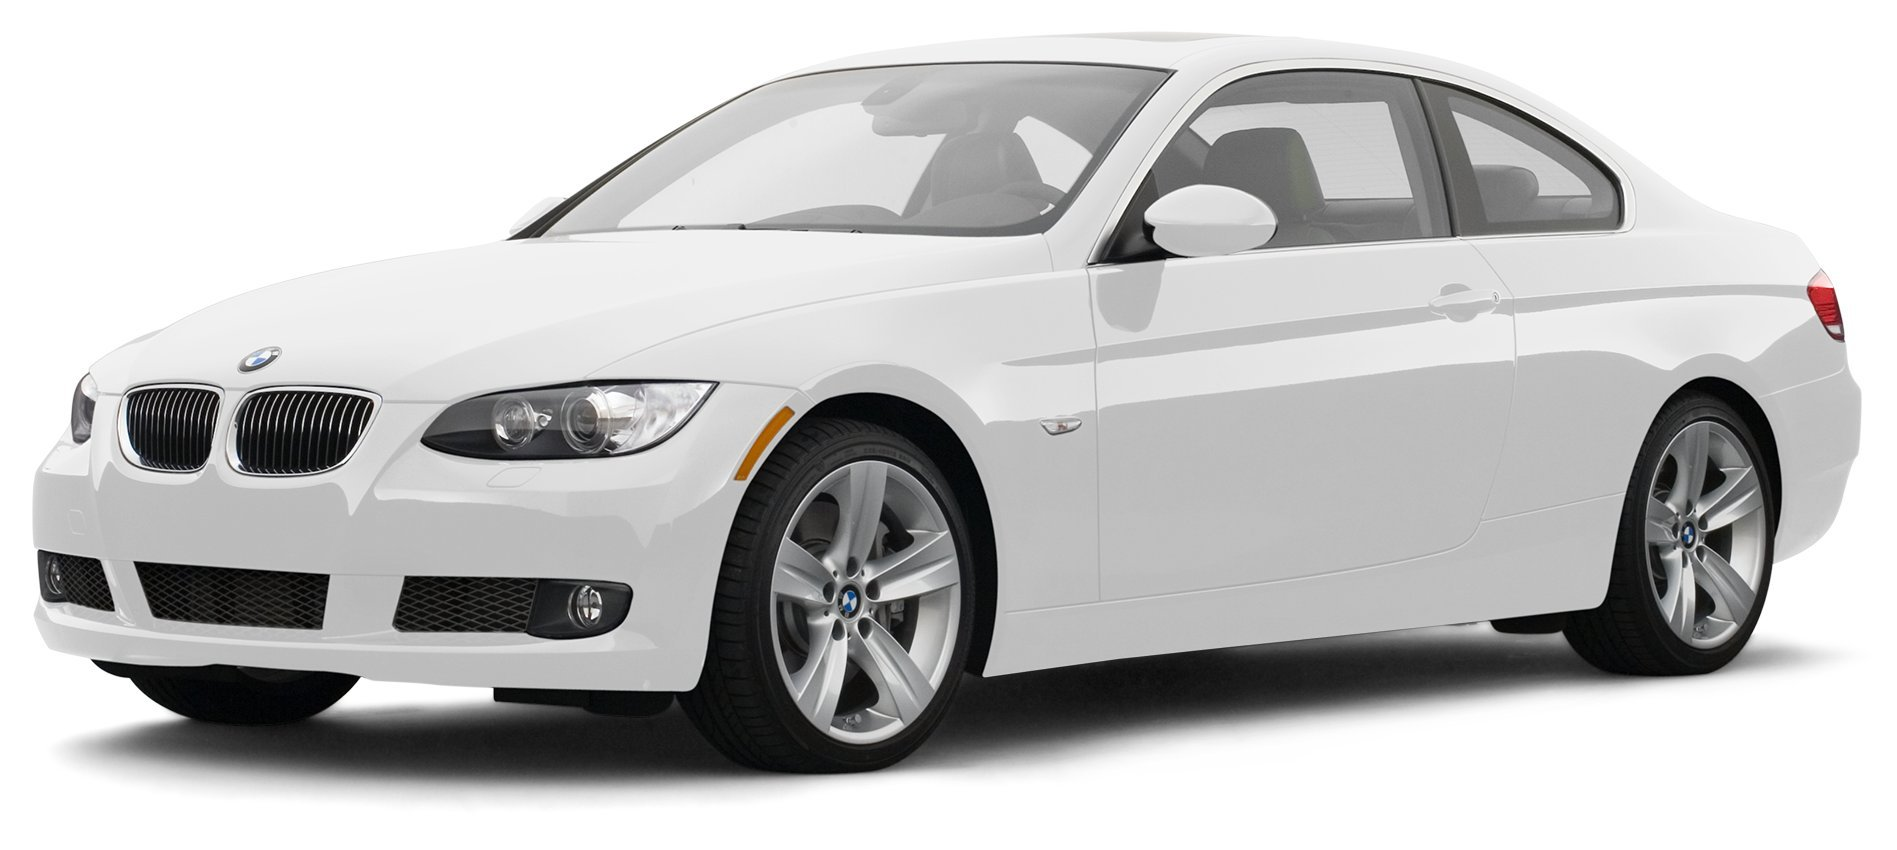 2007 bmw 328i reviews images and specs vehicles. Black Bedroom Furniture Sets. Home Design Ideas